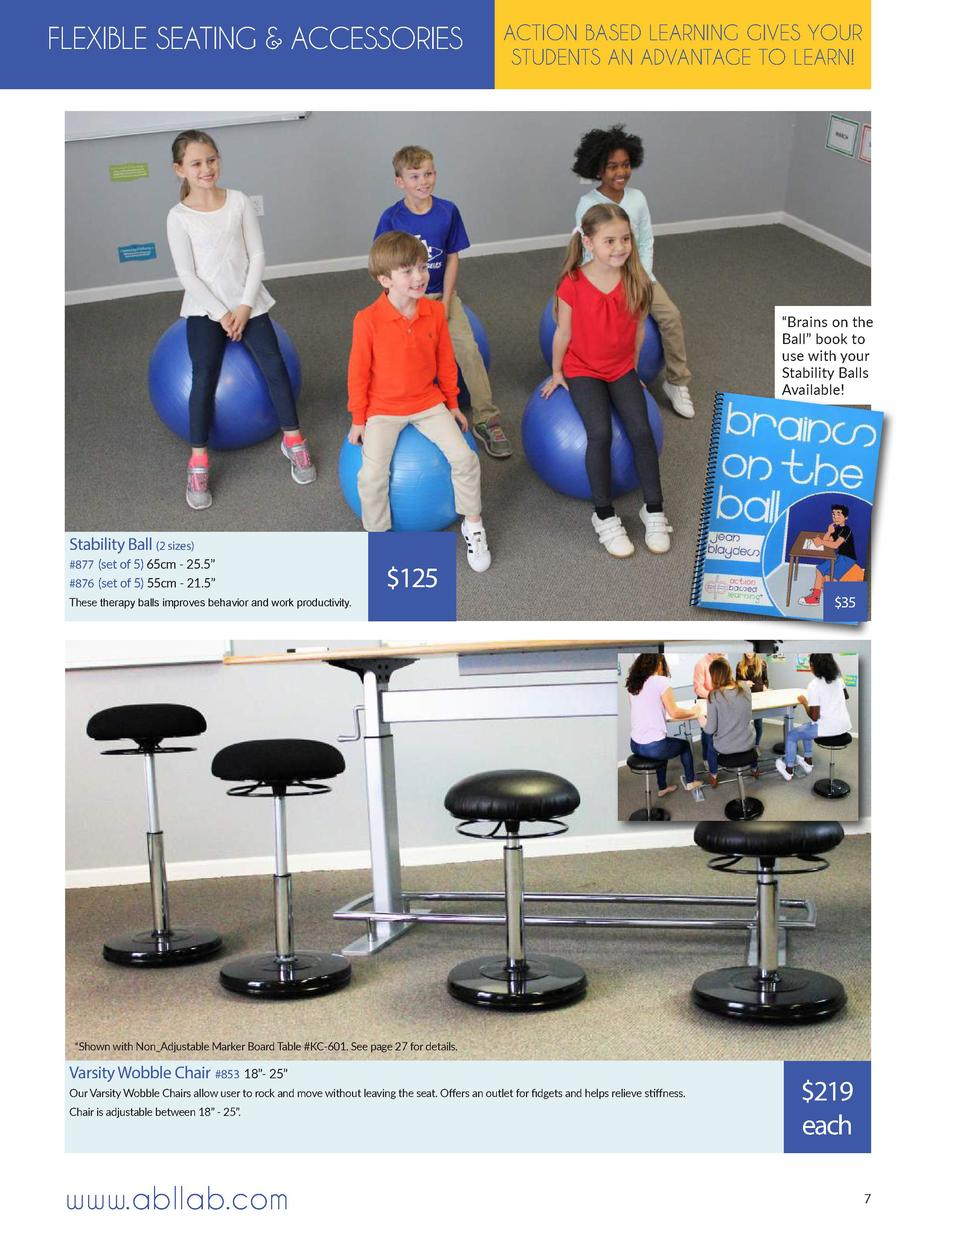 FLEXIBLE SEATING   ACCESSORIES  ACTION BASED LEARNING GIVES YOUR STUDENTS AN ADVANTAGE TO LEARN      Brains on the Ball   ...